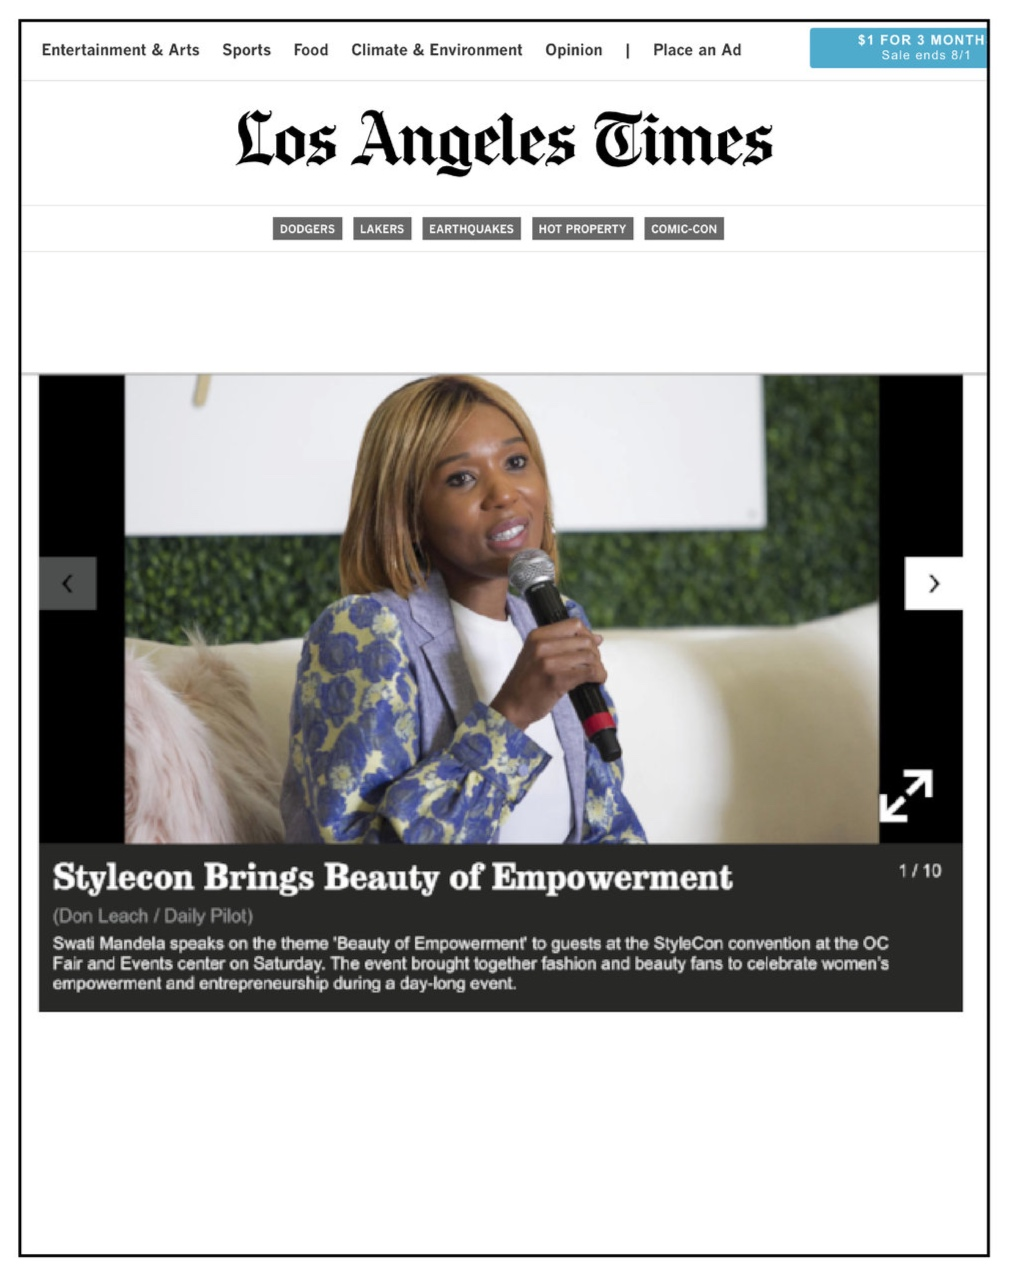 Los Angeles Times,  September 2017  StyleCon Brings Beauty of Empowerment